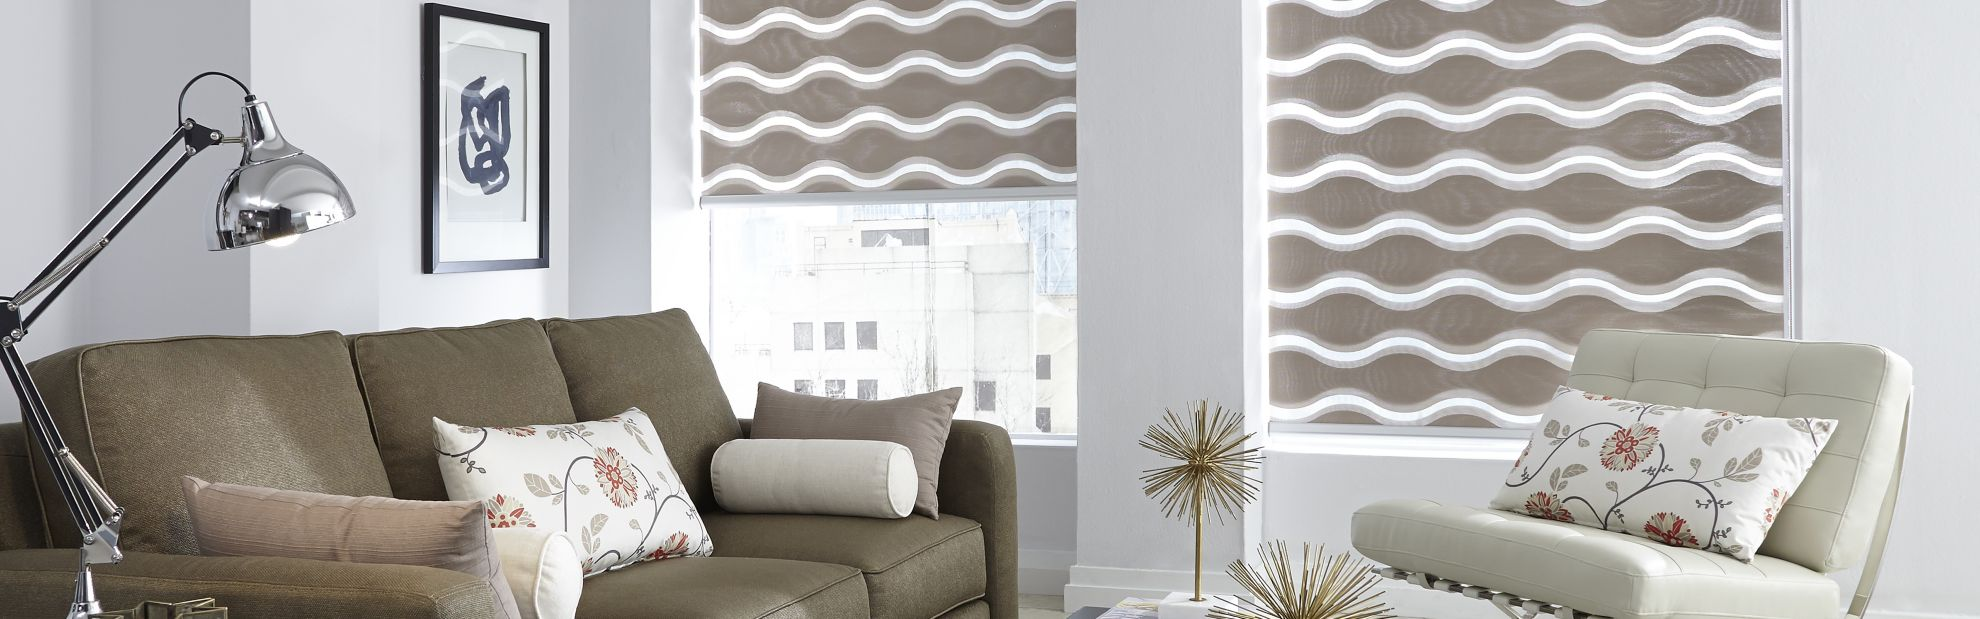 Custom Window Treatments In Vancouver Wa Stoneside Blinds